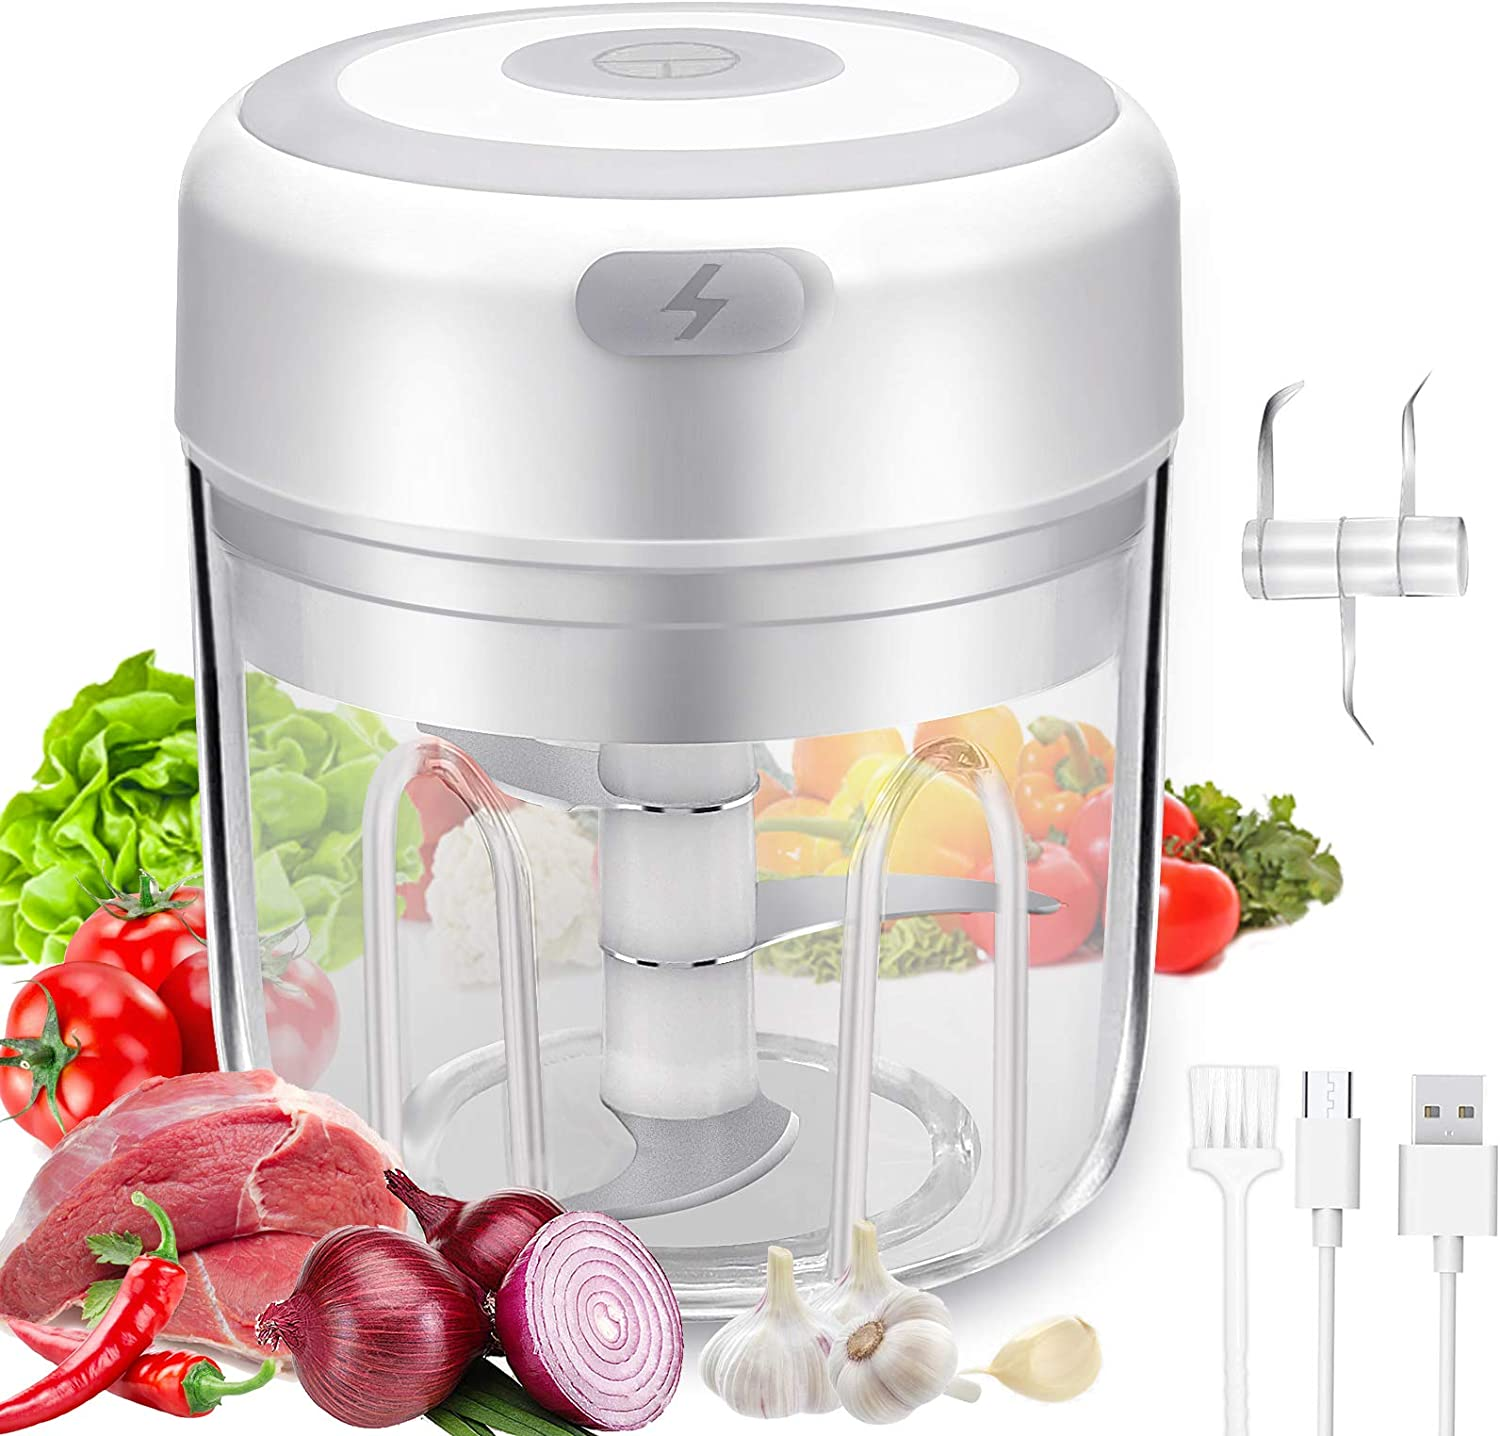 Electric Mini Garlic Chopper - Handheld Wireless Mincer Electric Food Chopper - Chopper Blender Food Processor for Pepper Chili Veggies Nuts Meat